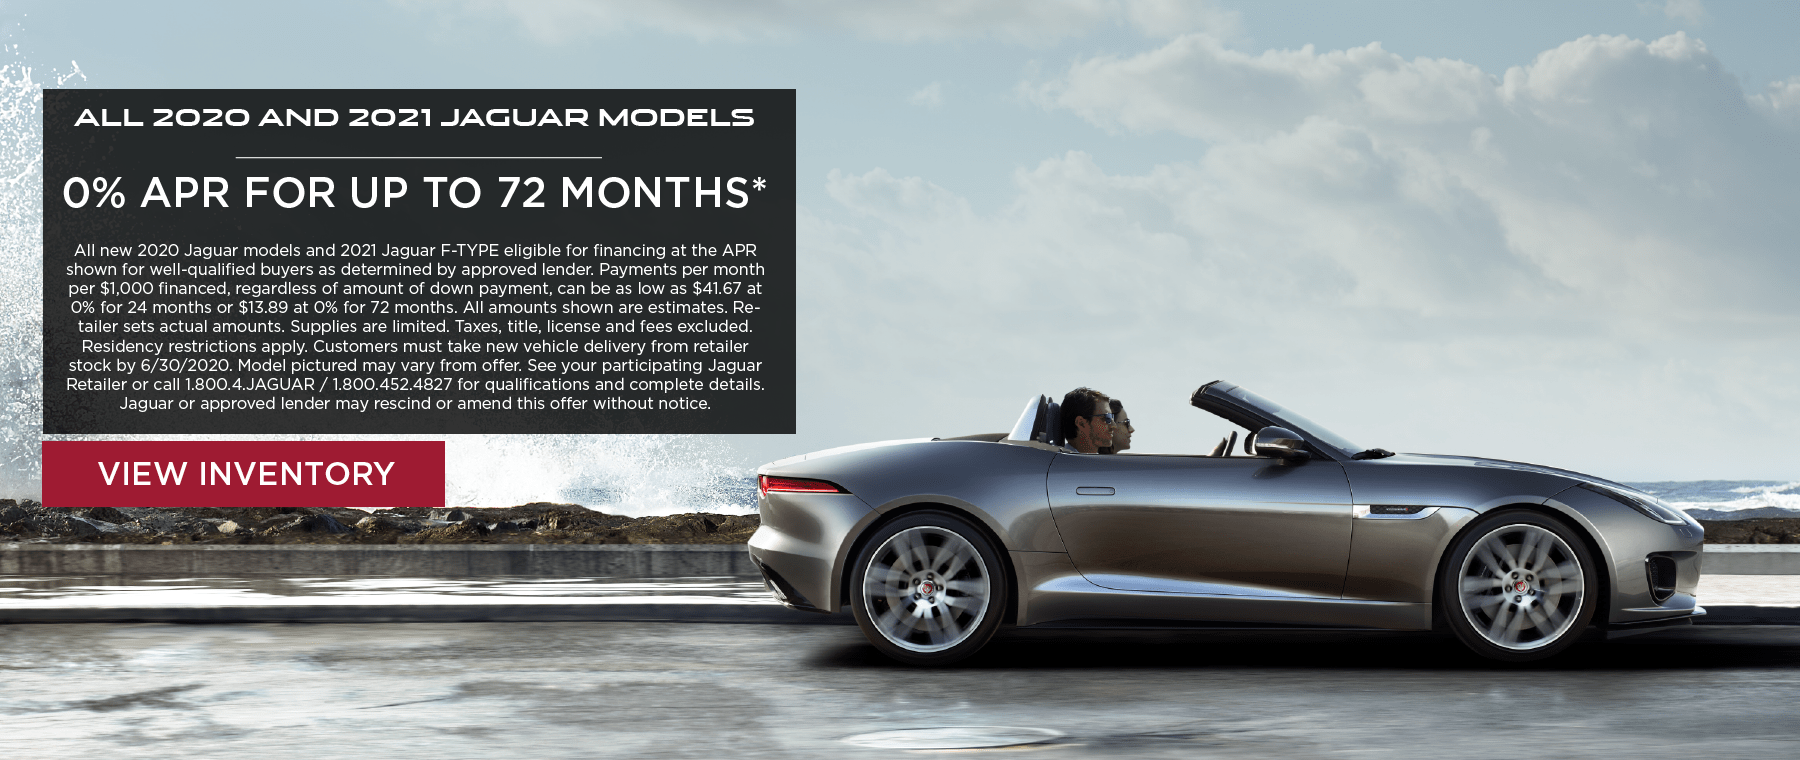 ALL 2020 AND 2021 JAGUAR MODELS. 0 PERCENT APR FOR UP TO 72 MONTHS. VIEW INVENTORY. SILVER JAGUAR F-TYPE CONVERTIBLE DRIVING DOWN ROAD NEAR OCEAN.